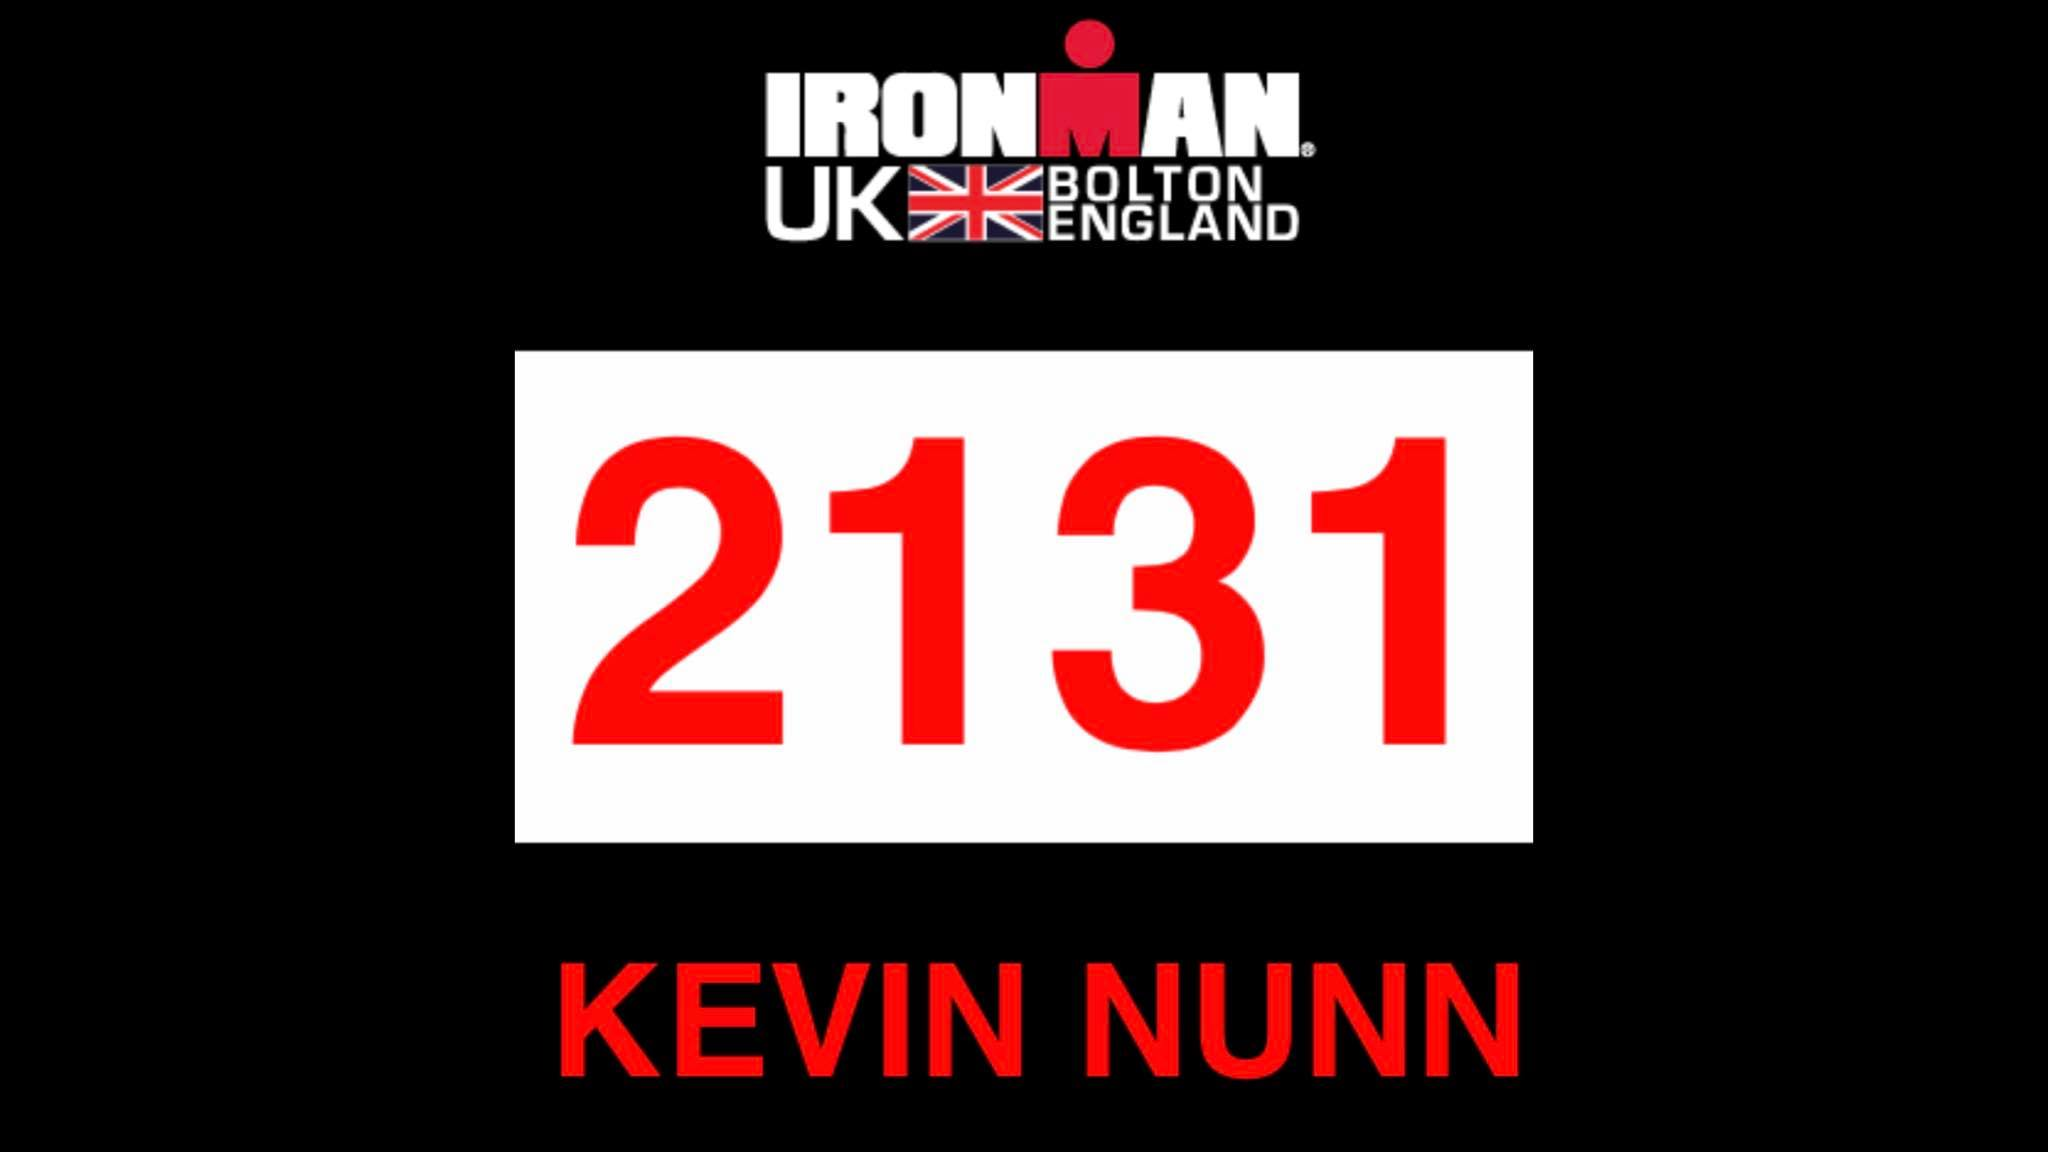 Coach_Terry_Wilson_Pursuit_of_The_Perfect_Race_IRONMAN_Bolton_United_Kingdom_Kevin_Nuun_Bib.jpg